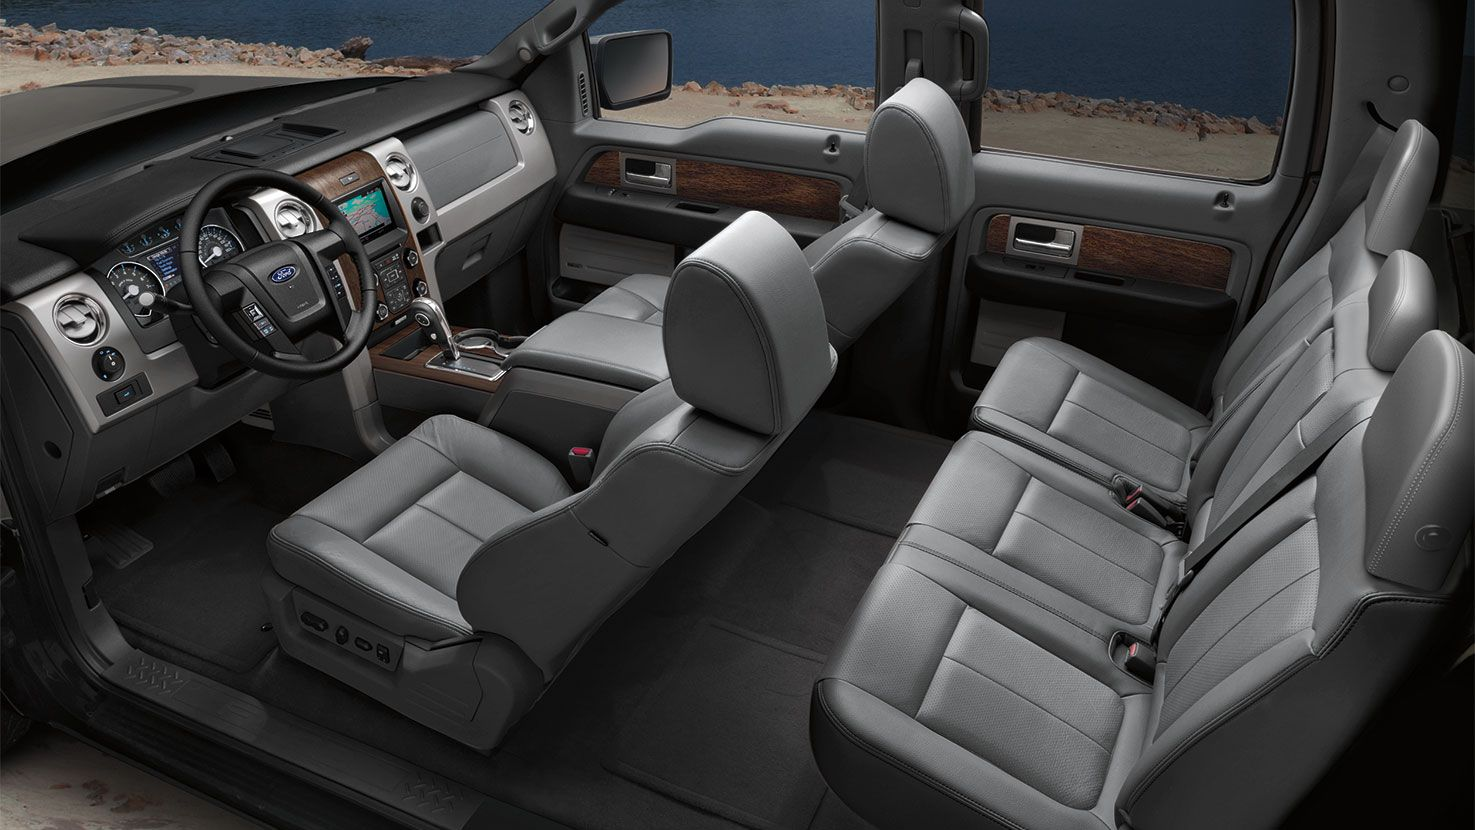 2014 ford f150 black lariat interior